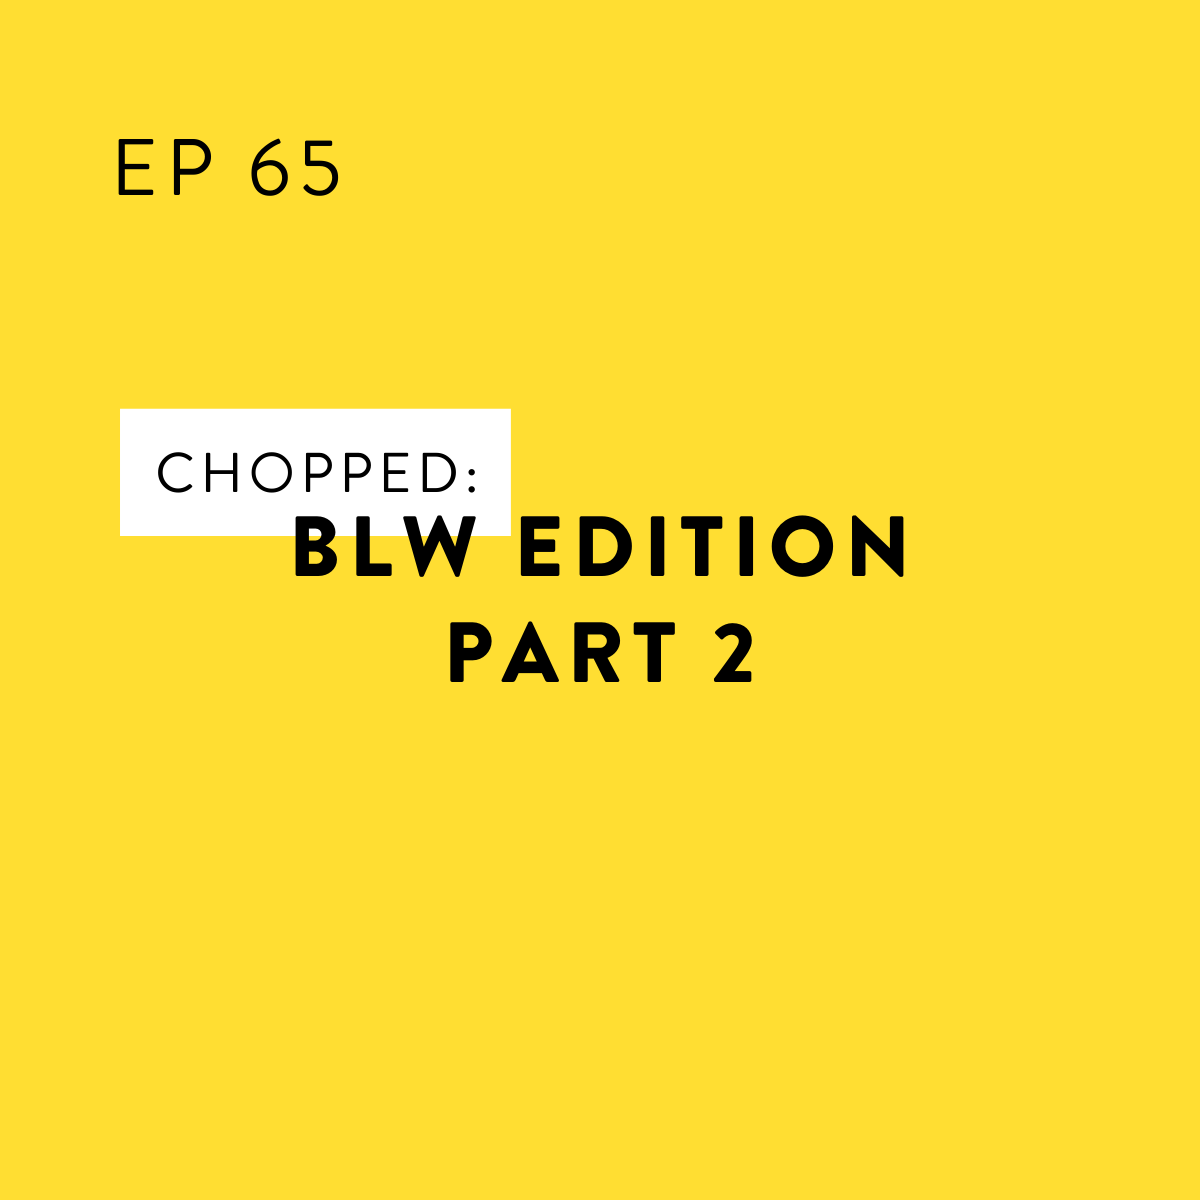 Chopped: BLW Edition Part 2